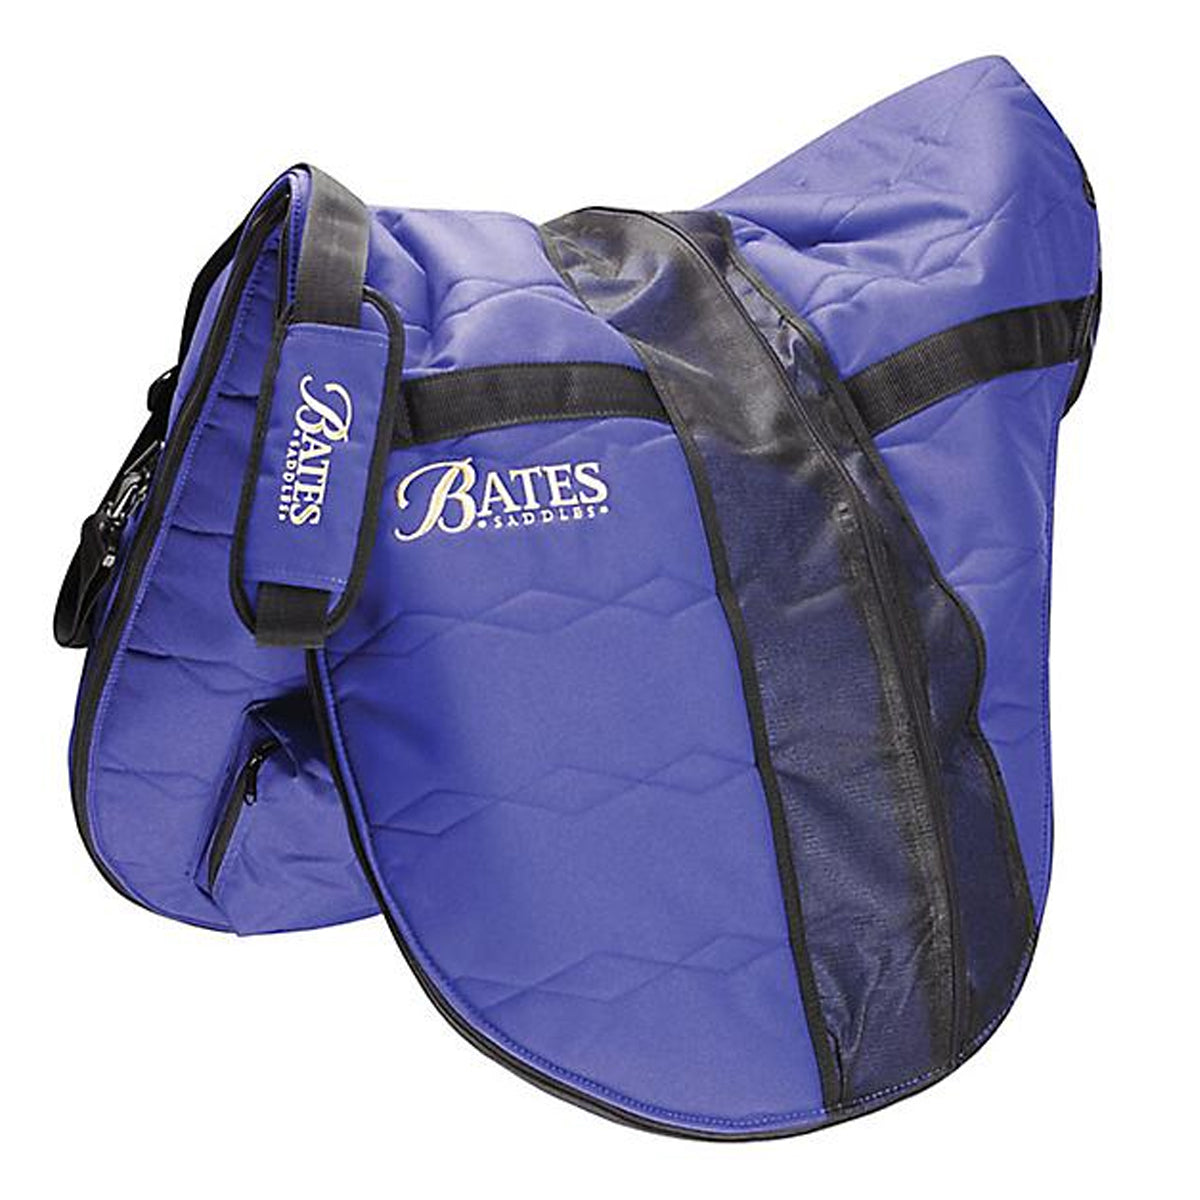 Bates English Saddle Bag